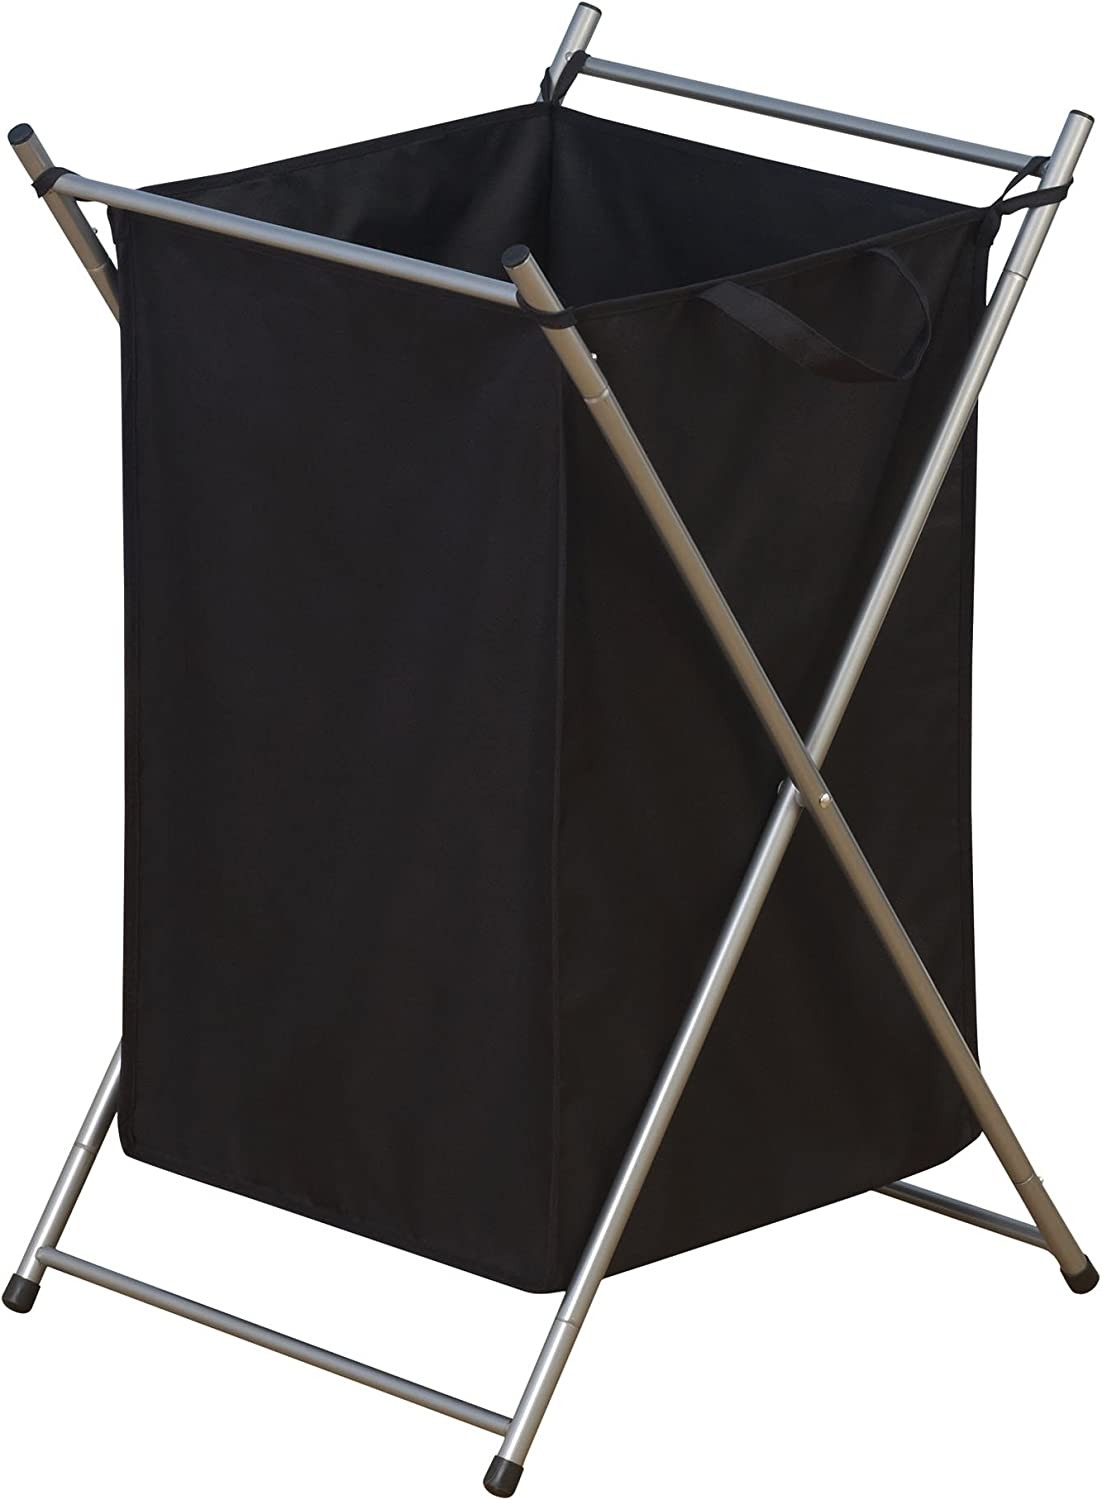 Household Essentials Folding Laundry Hamper with Black Polyester Bag, Satin Silver Frame